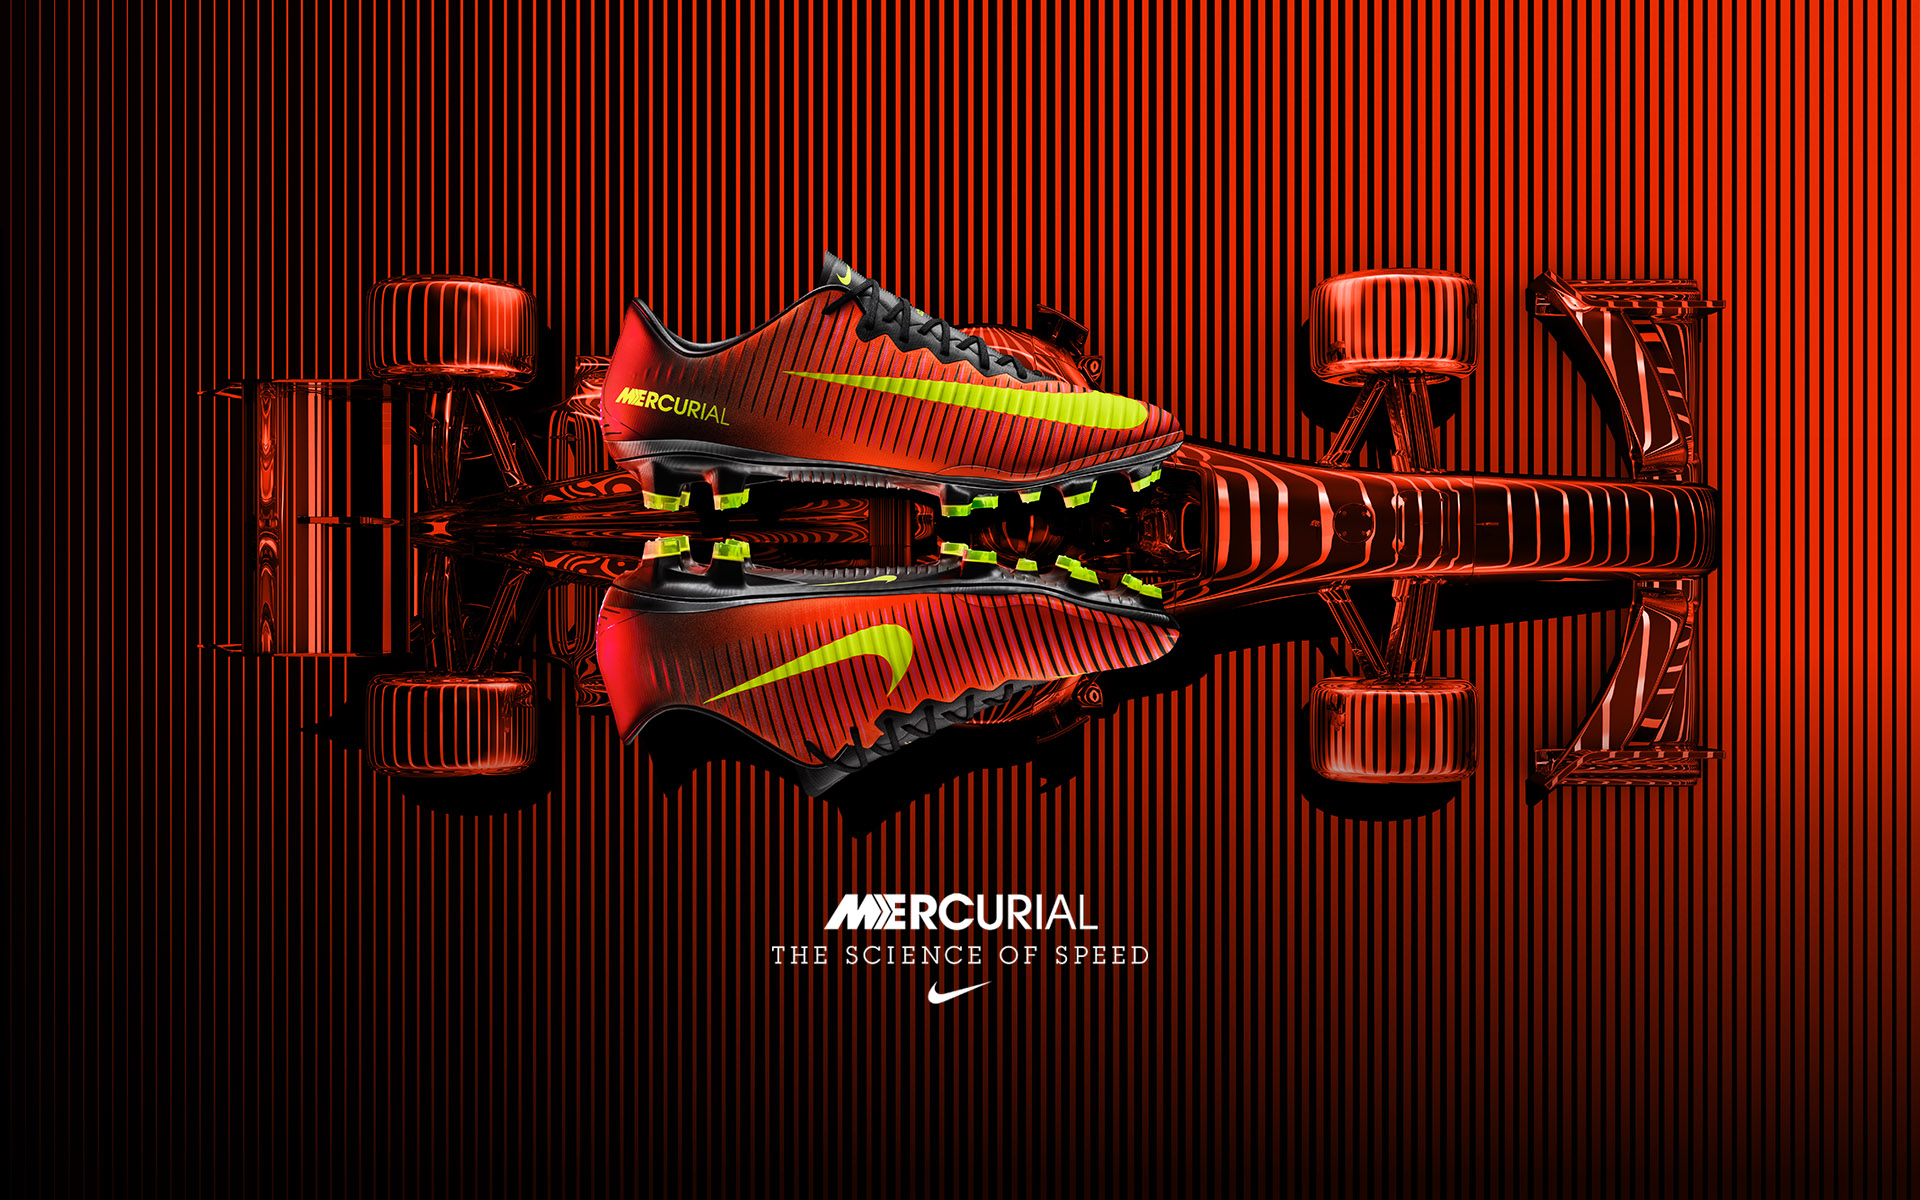 Nike Mercurial VaporX • Nike Art Director: David Chen • Creative agency: Intro • Director: Julian Gibbs